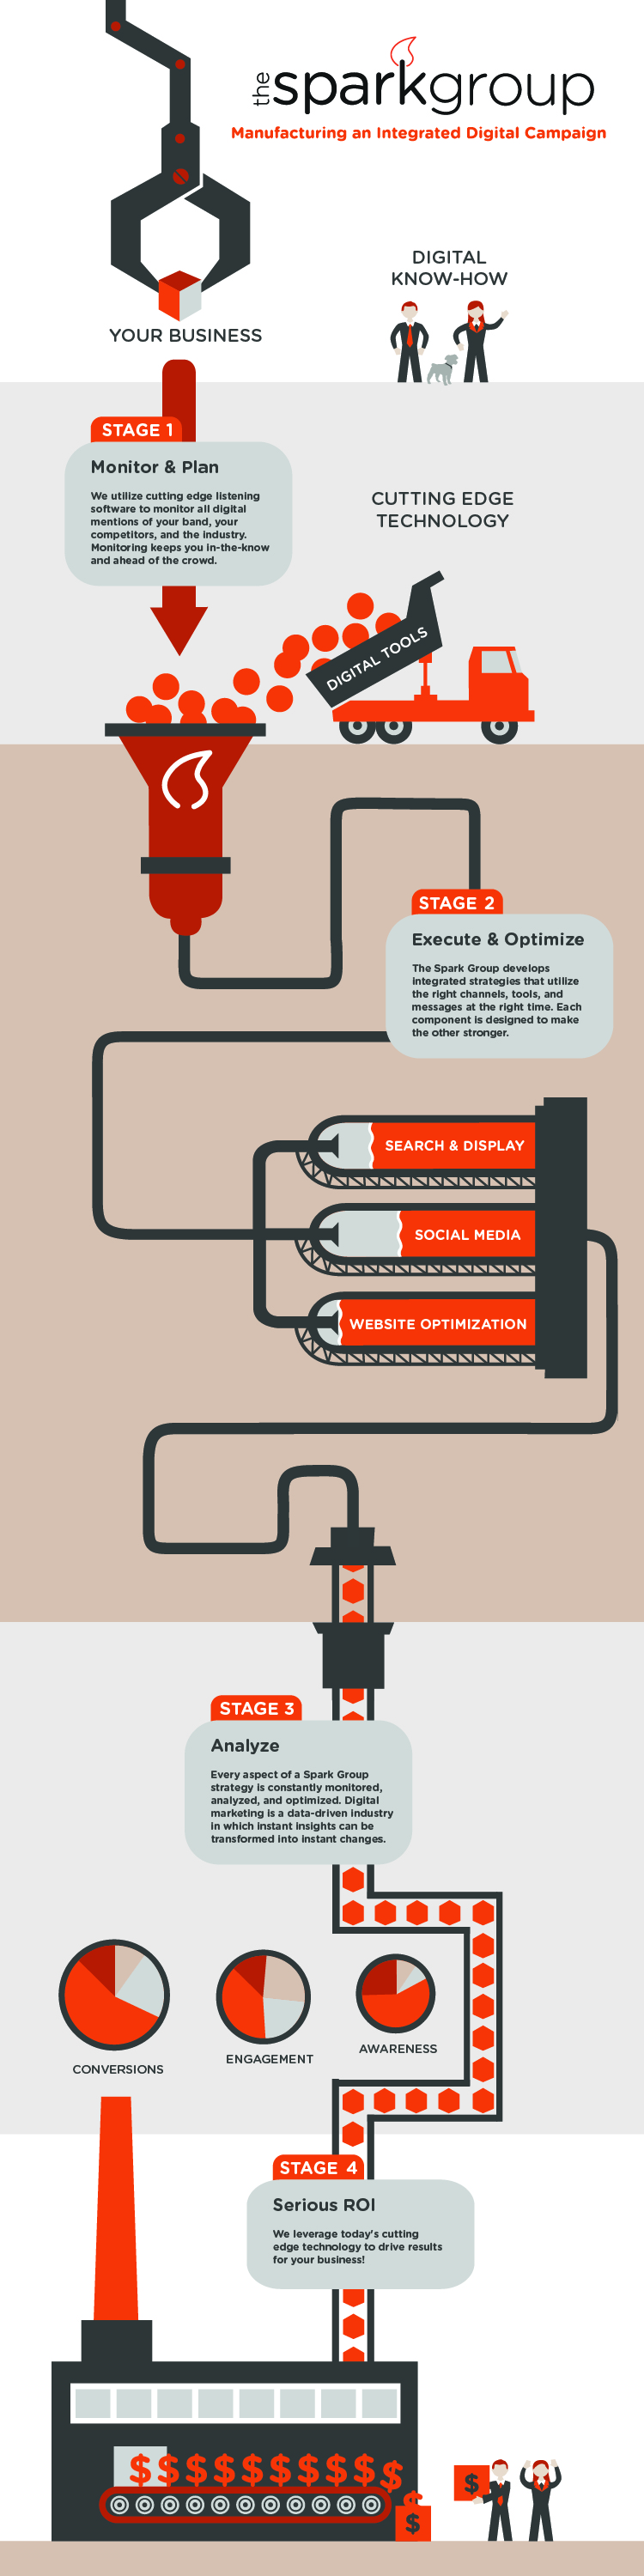 integrated_digital_campaign_infographic